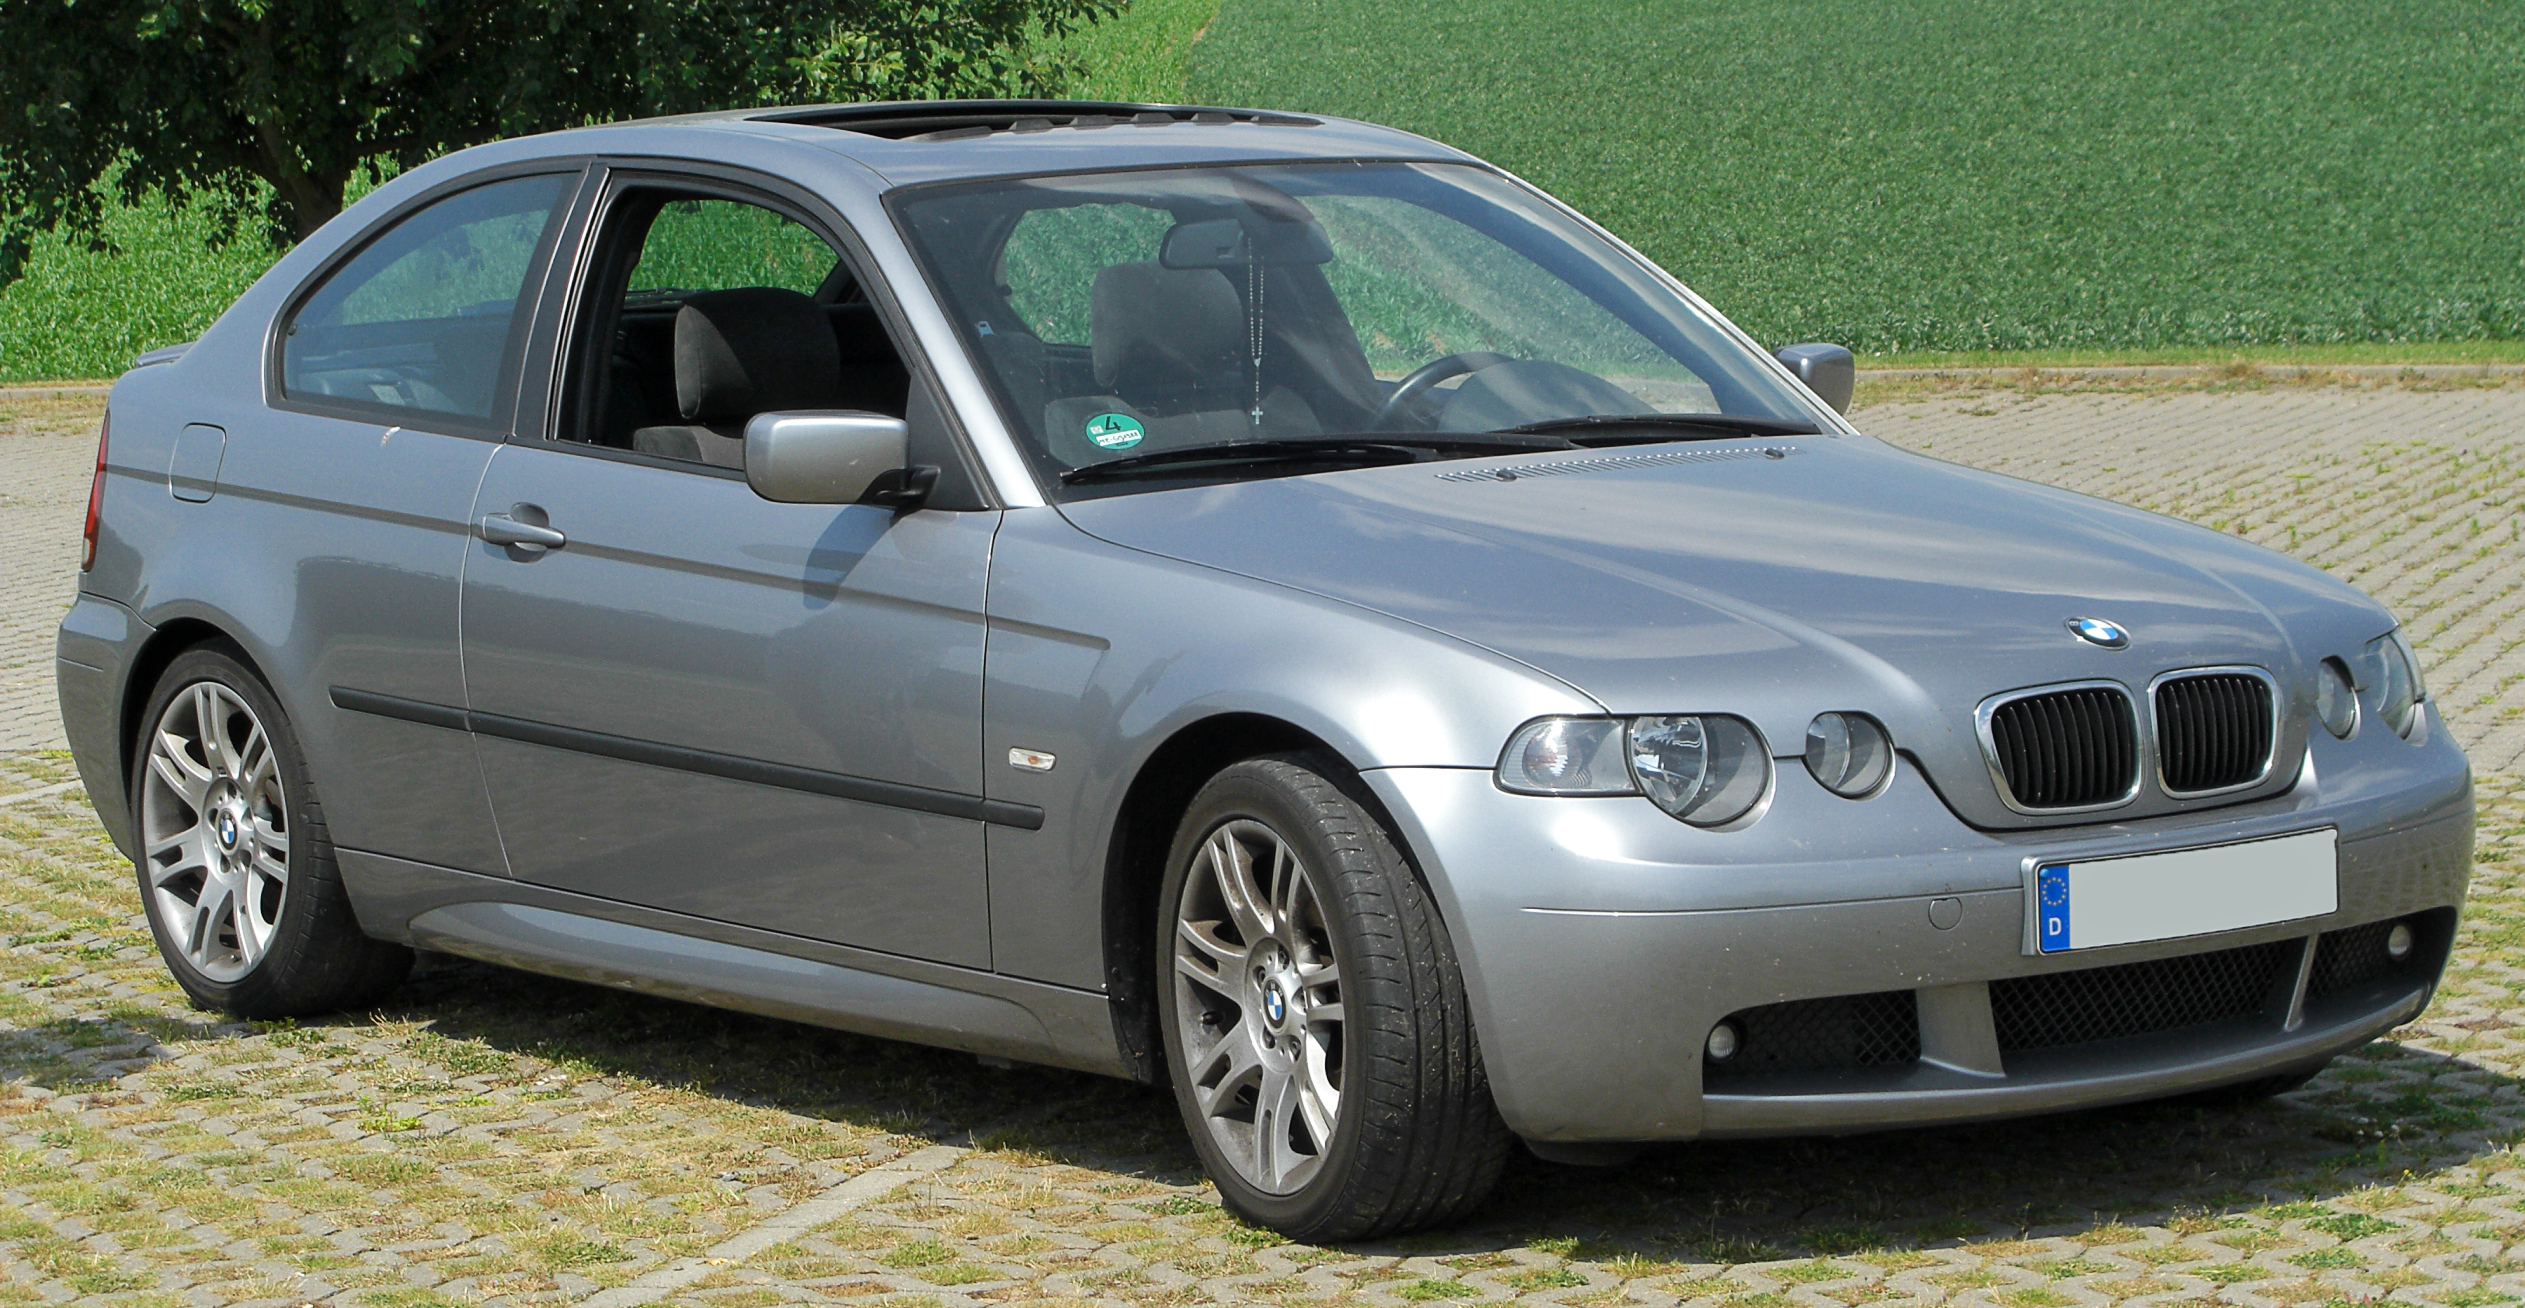 file bmw 316ti compact m sportpaket e46 facelift front 2 wikimedia commons. Black Bedroom Furniture Sets. Home Design Ideas